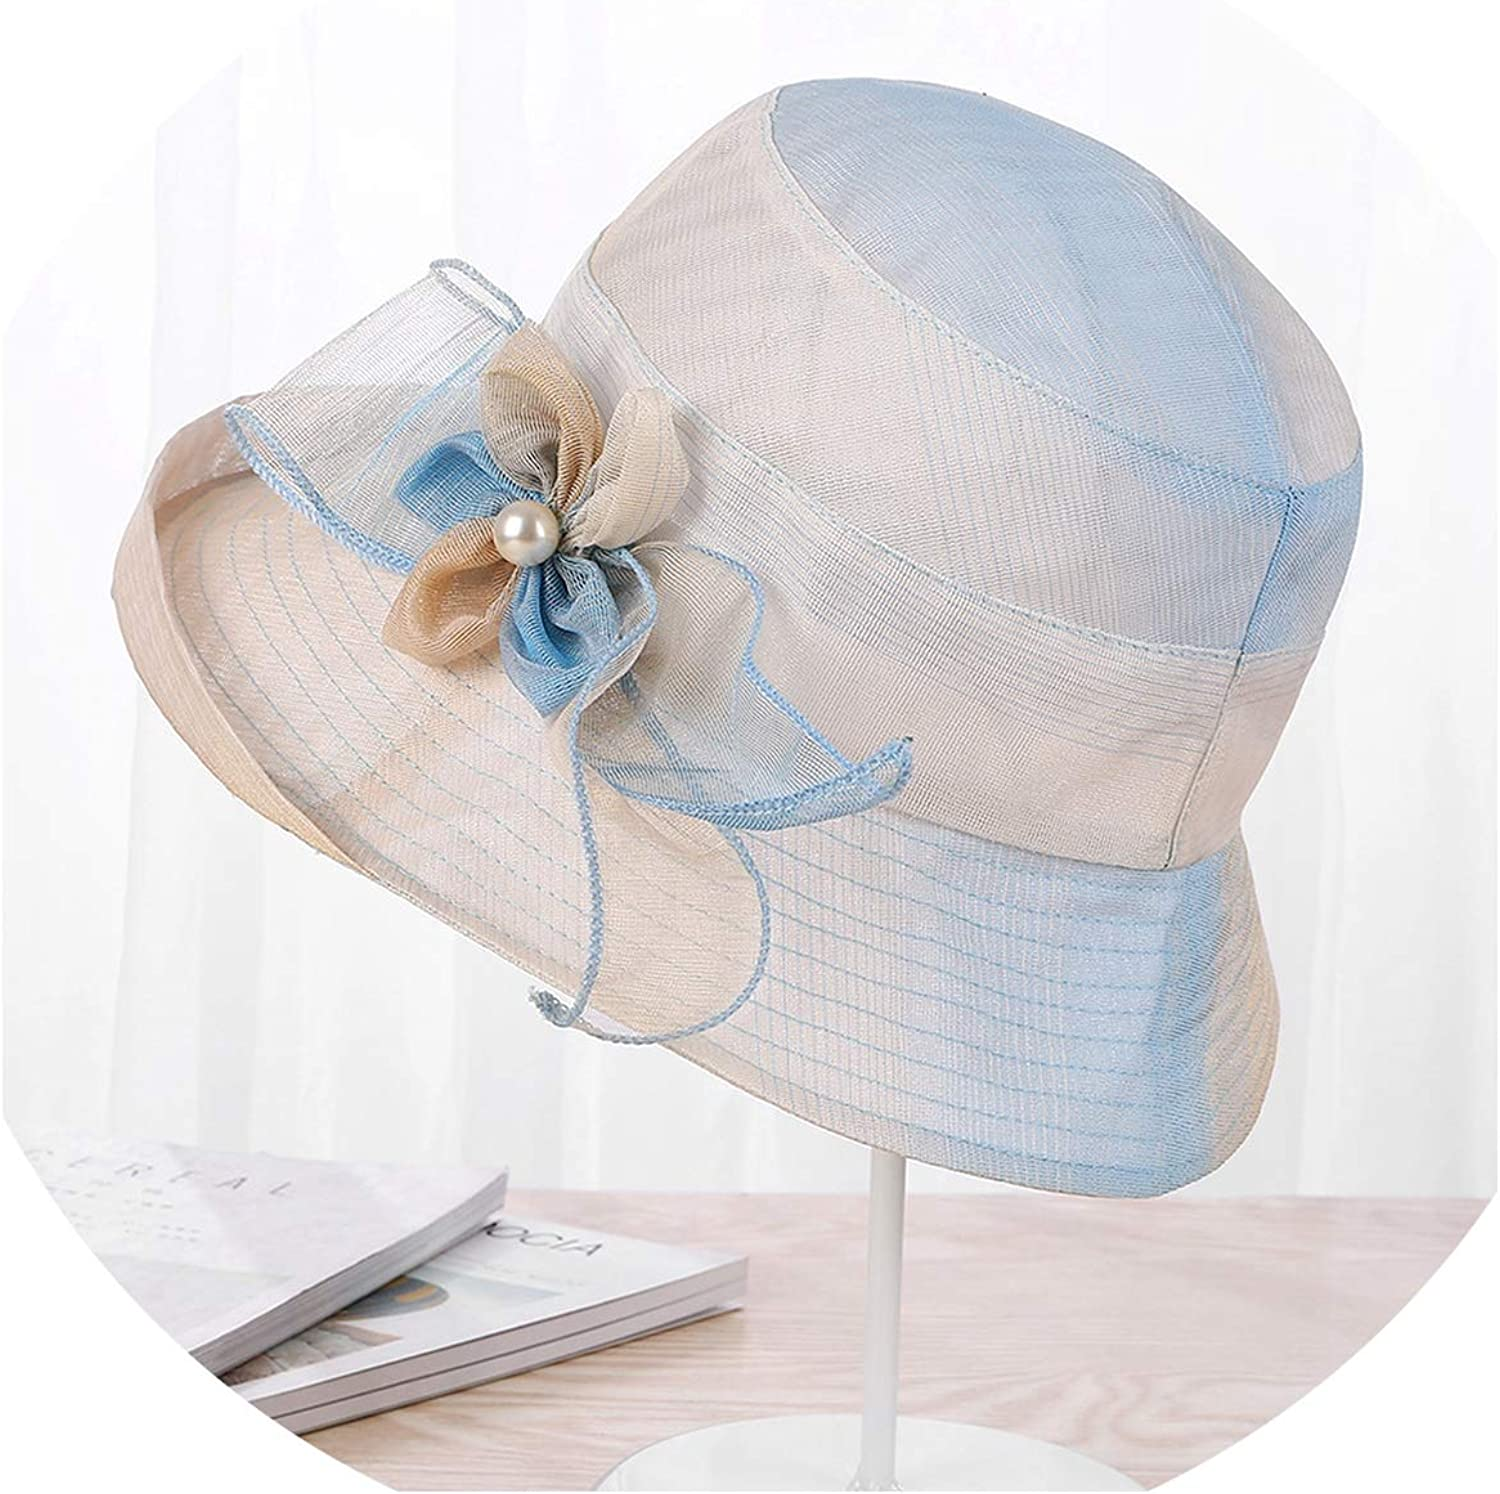 Wide BriFloral Hats Pearl Flowers Floppy Visors Female Elegant Sea Beach Caps Sun Protective